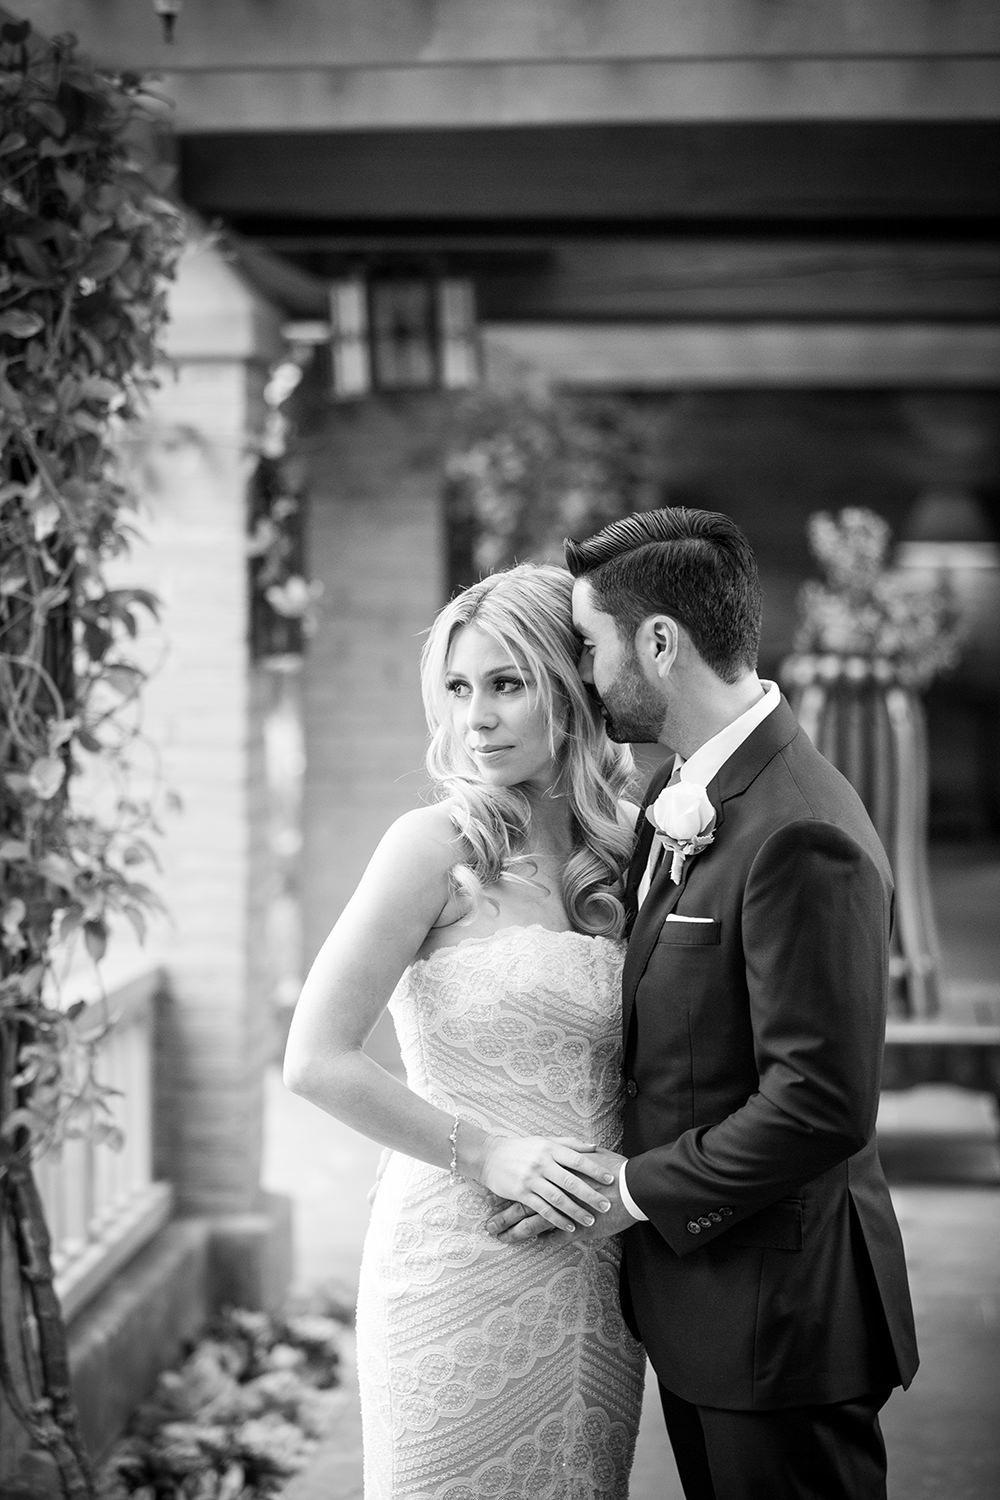 romantic black and white with the bride and groom